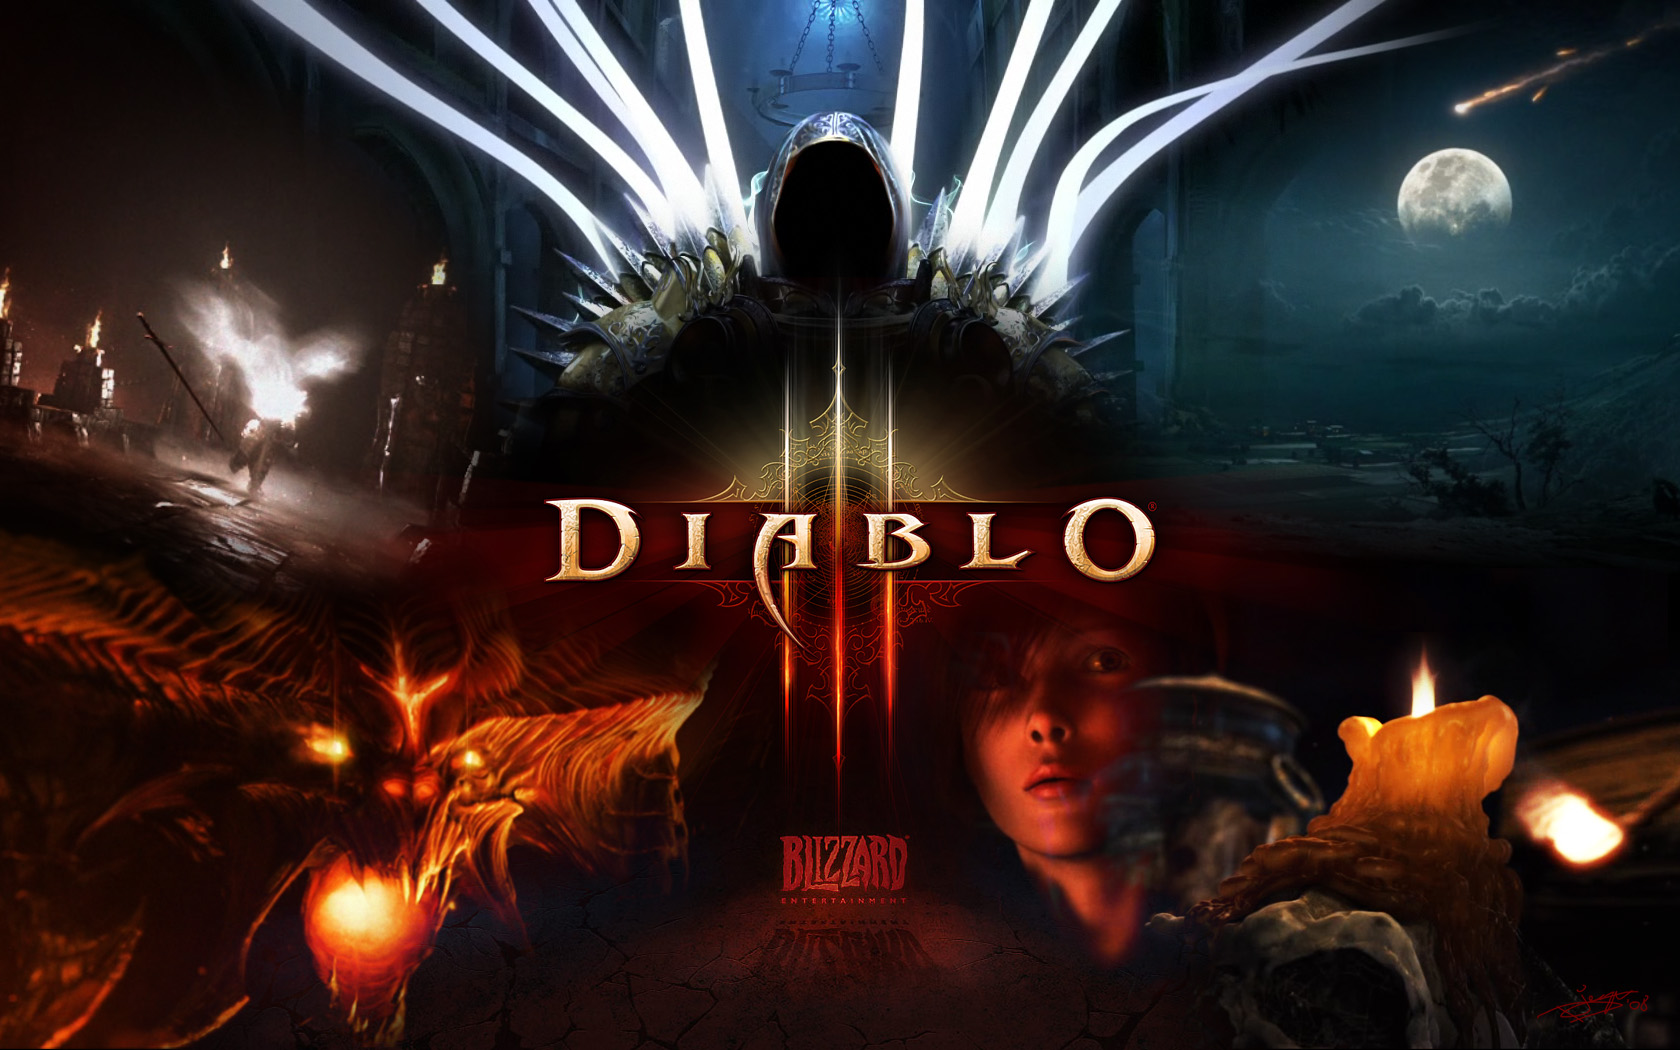 DIABLO 3 RU/EU- CD-KEY В НАЛИЧИИ (ФОТО)